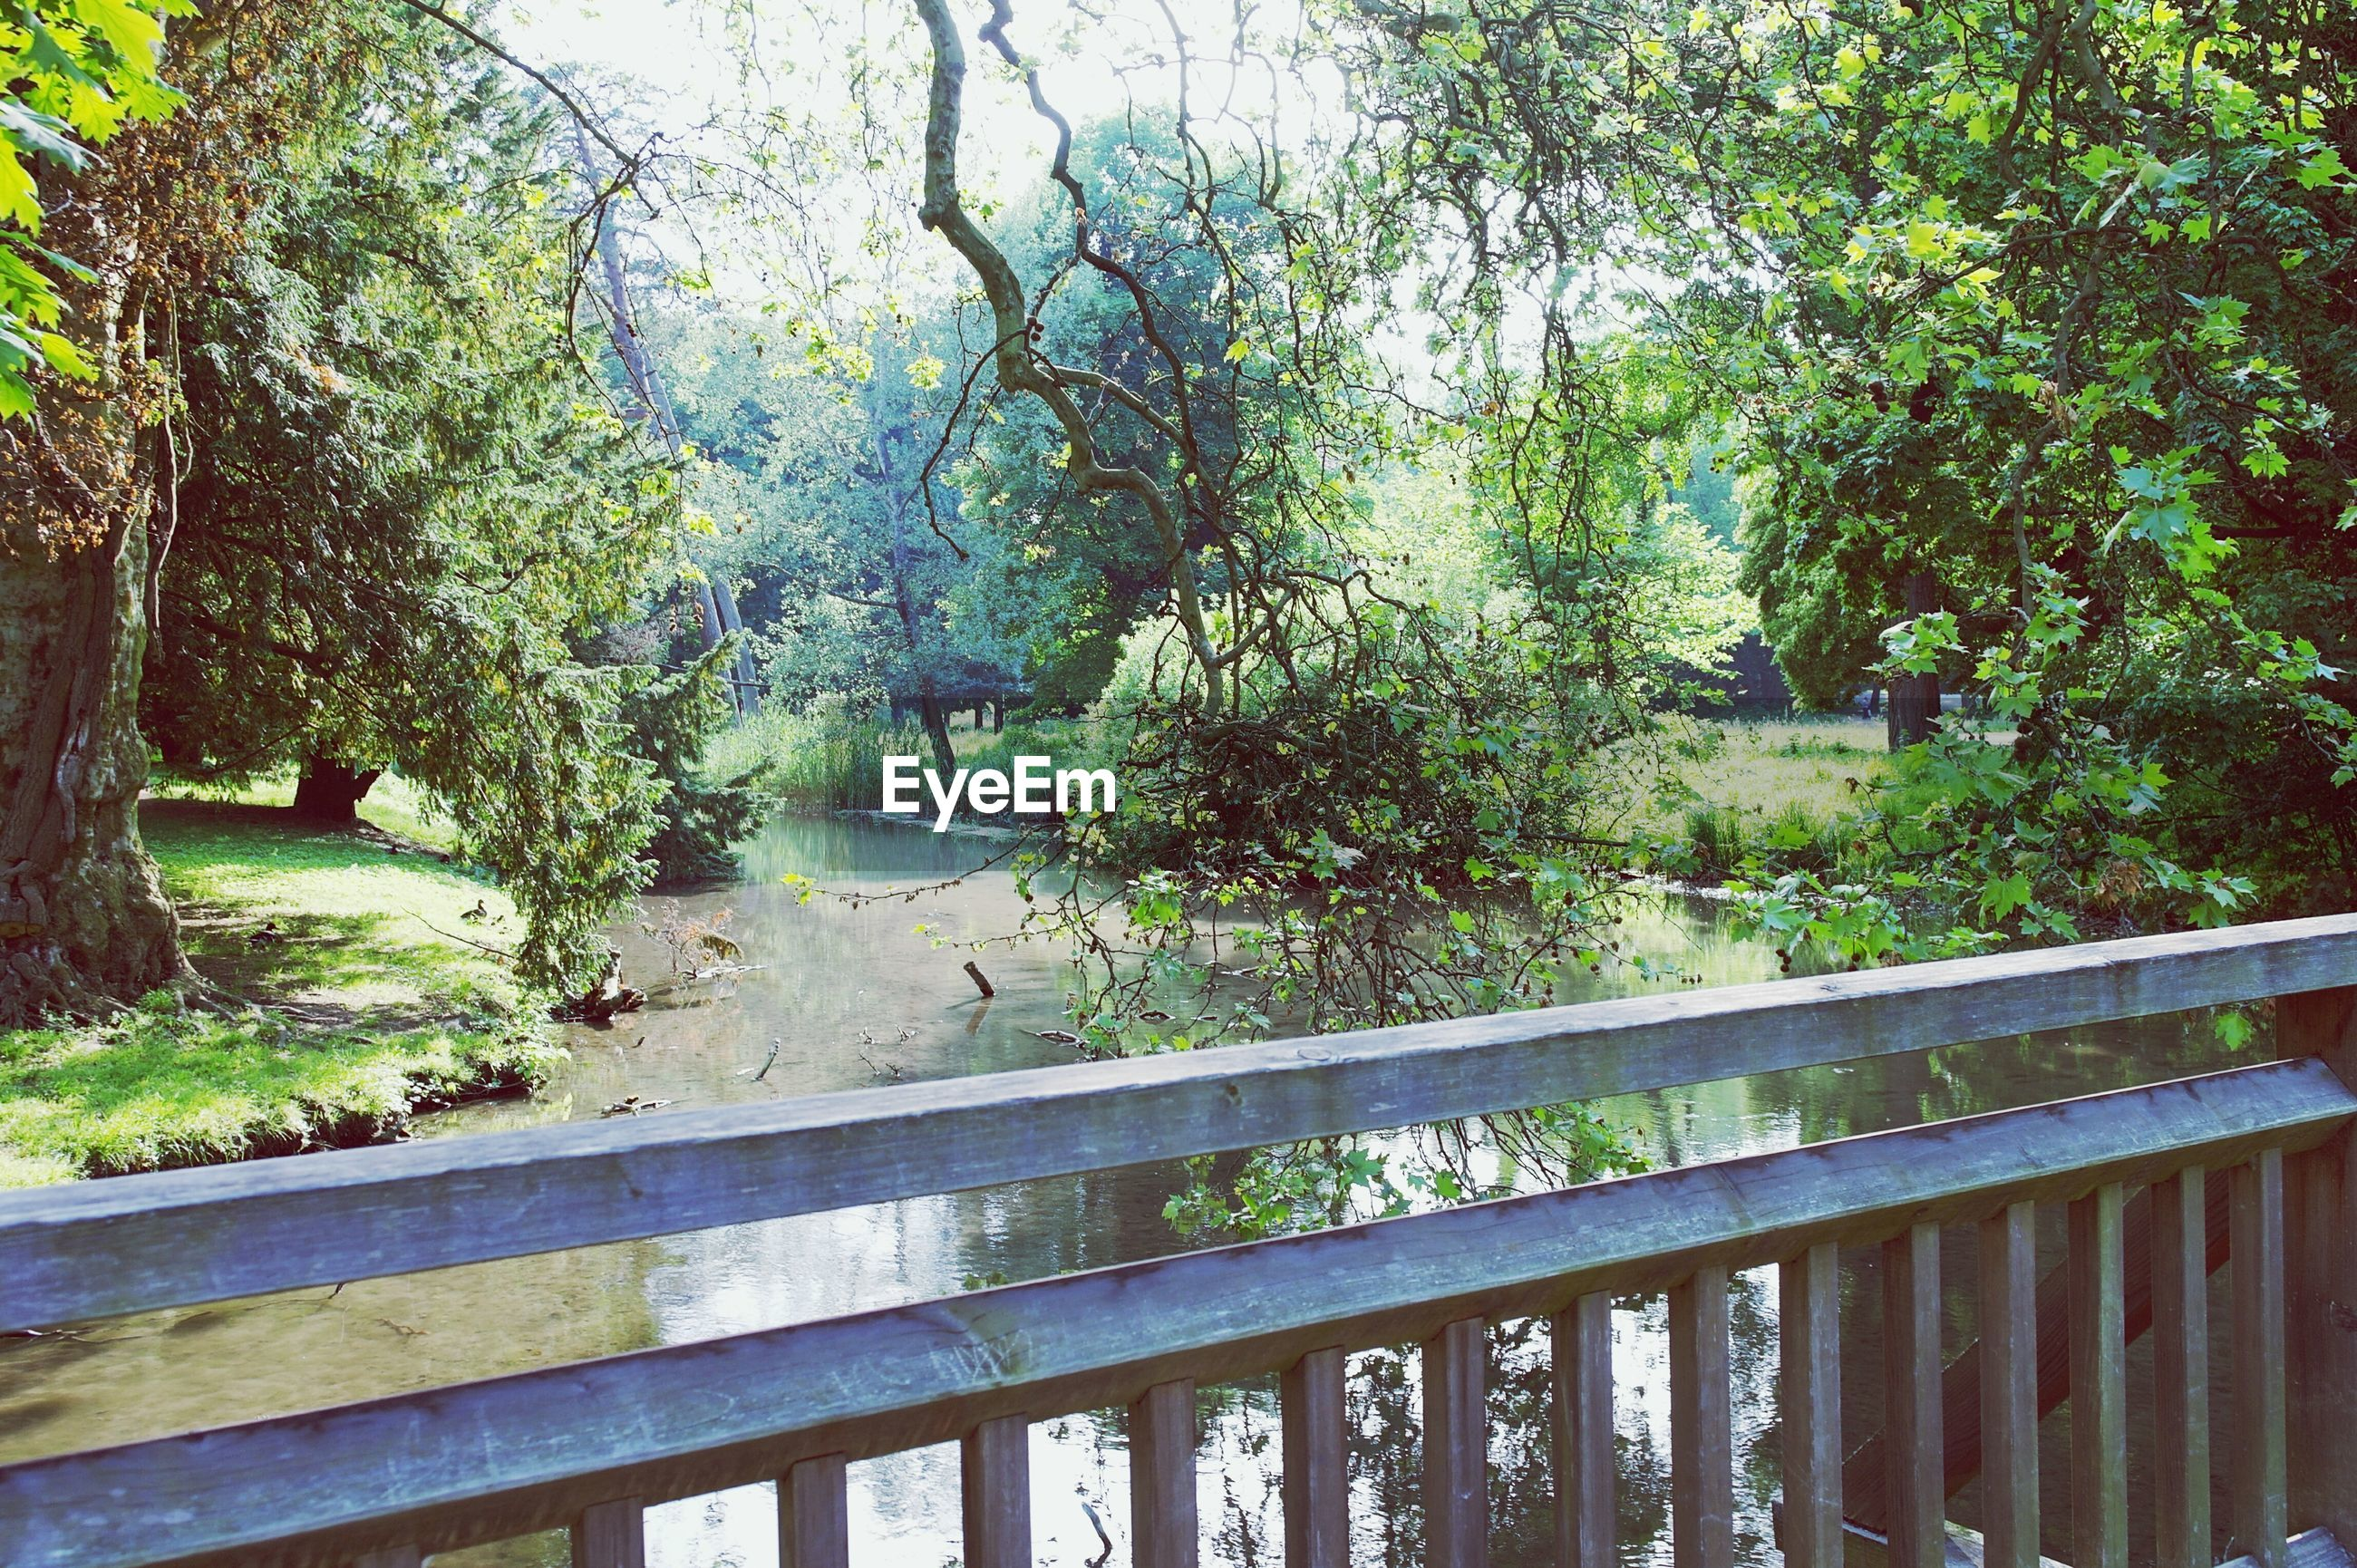 tree, railing, growth, water, green color, nature, footbridge, tranquility, branch, beauty in nature, plant, park - man made space, bridge - man made structure, fence, day, outdoors, sunlight, tranquil scene, lush foliage, scenics